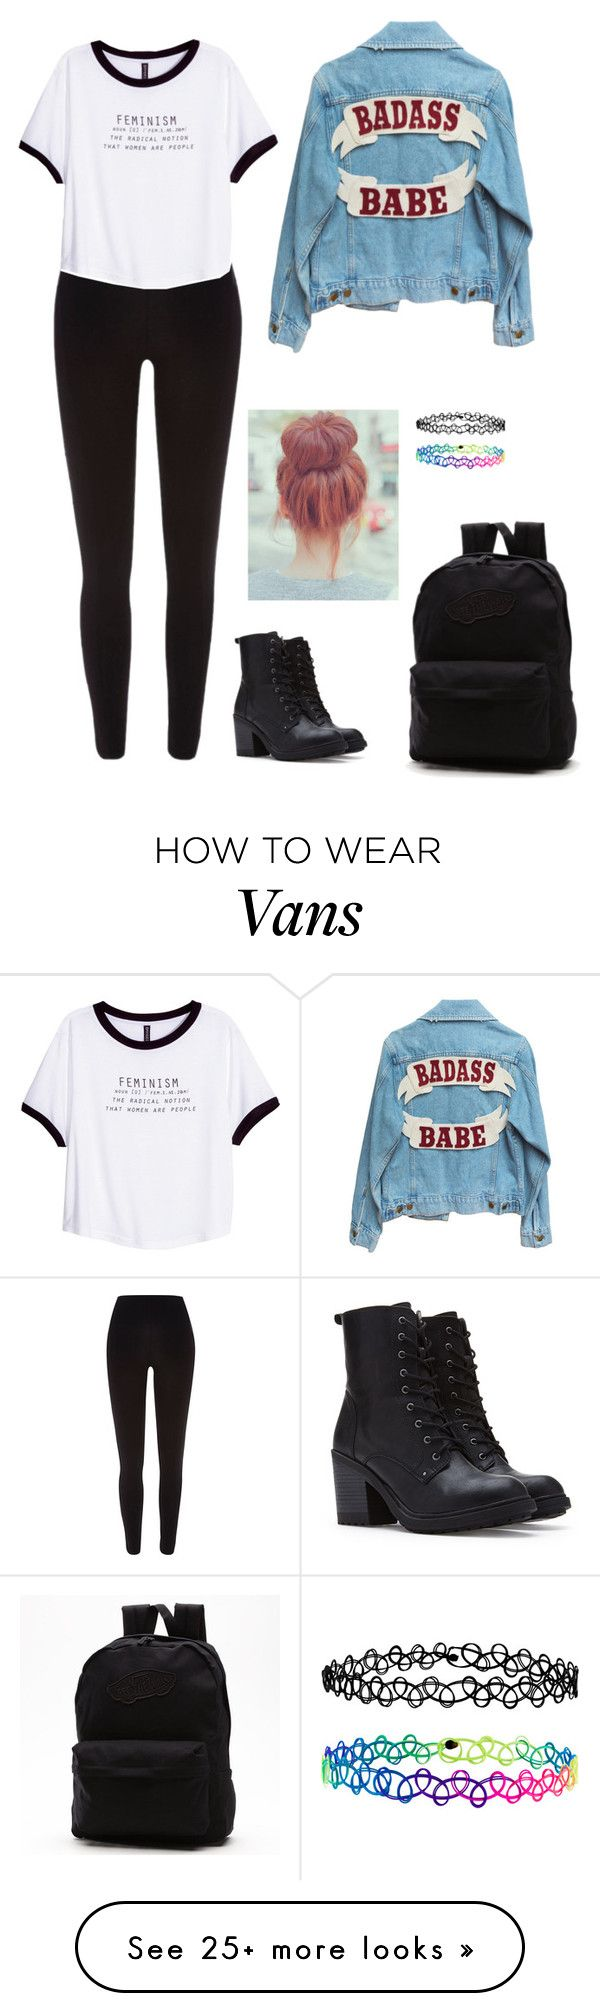 """outfit of the day"" by haileypariswatson on Polyvore featuring River Island, H&M, Forever 21, Accessorize and Vans"